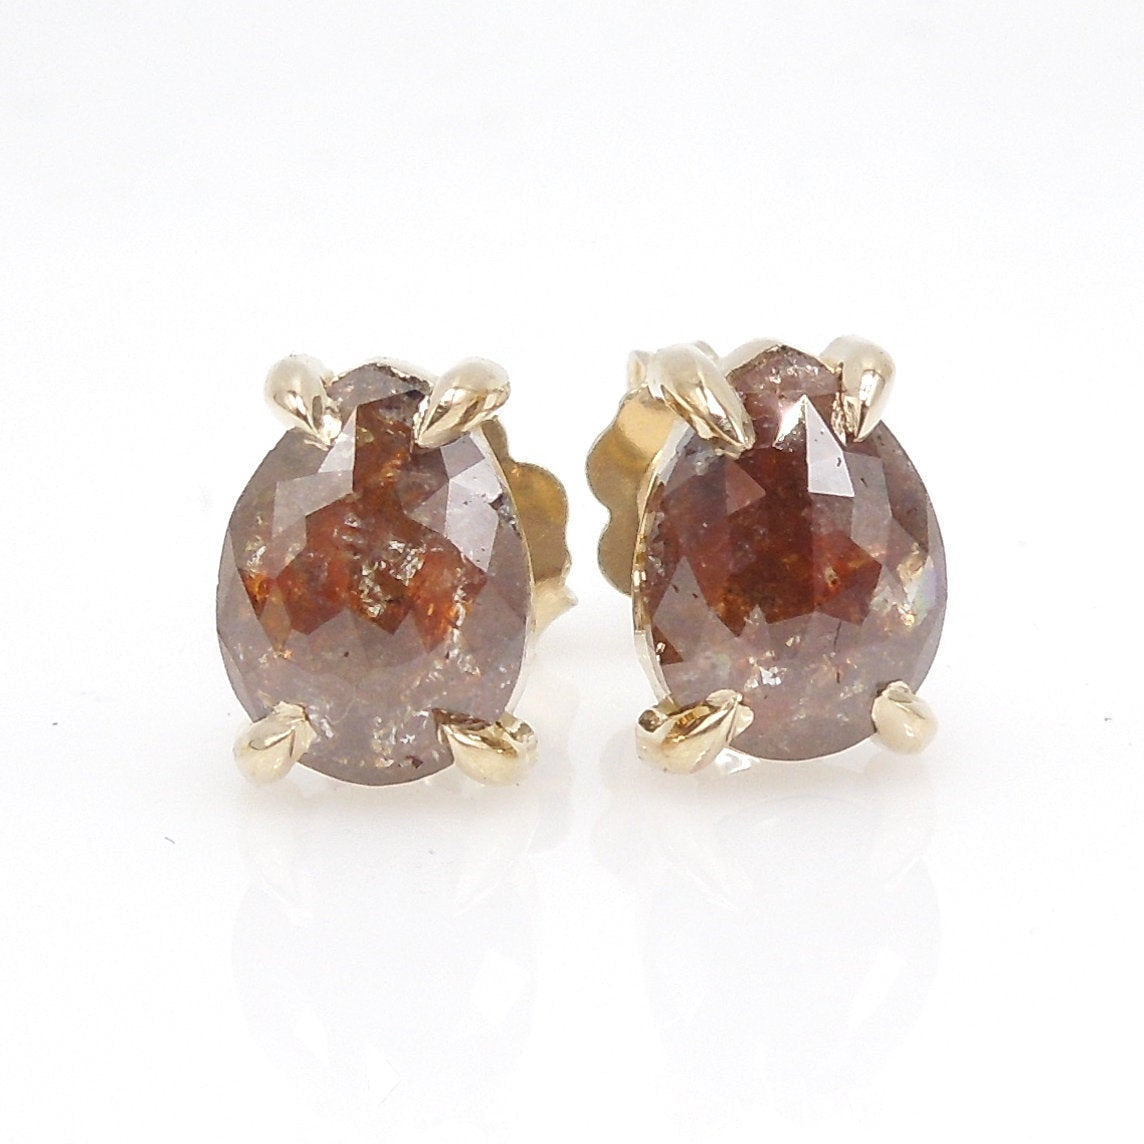 Brown Salt And Pepper Rose Cut Pear Shaped Diamond Stud Earrings In Ye A J Martin